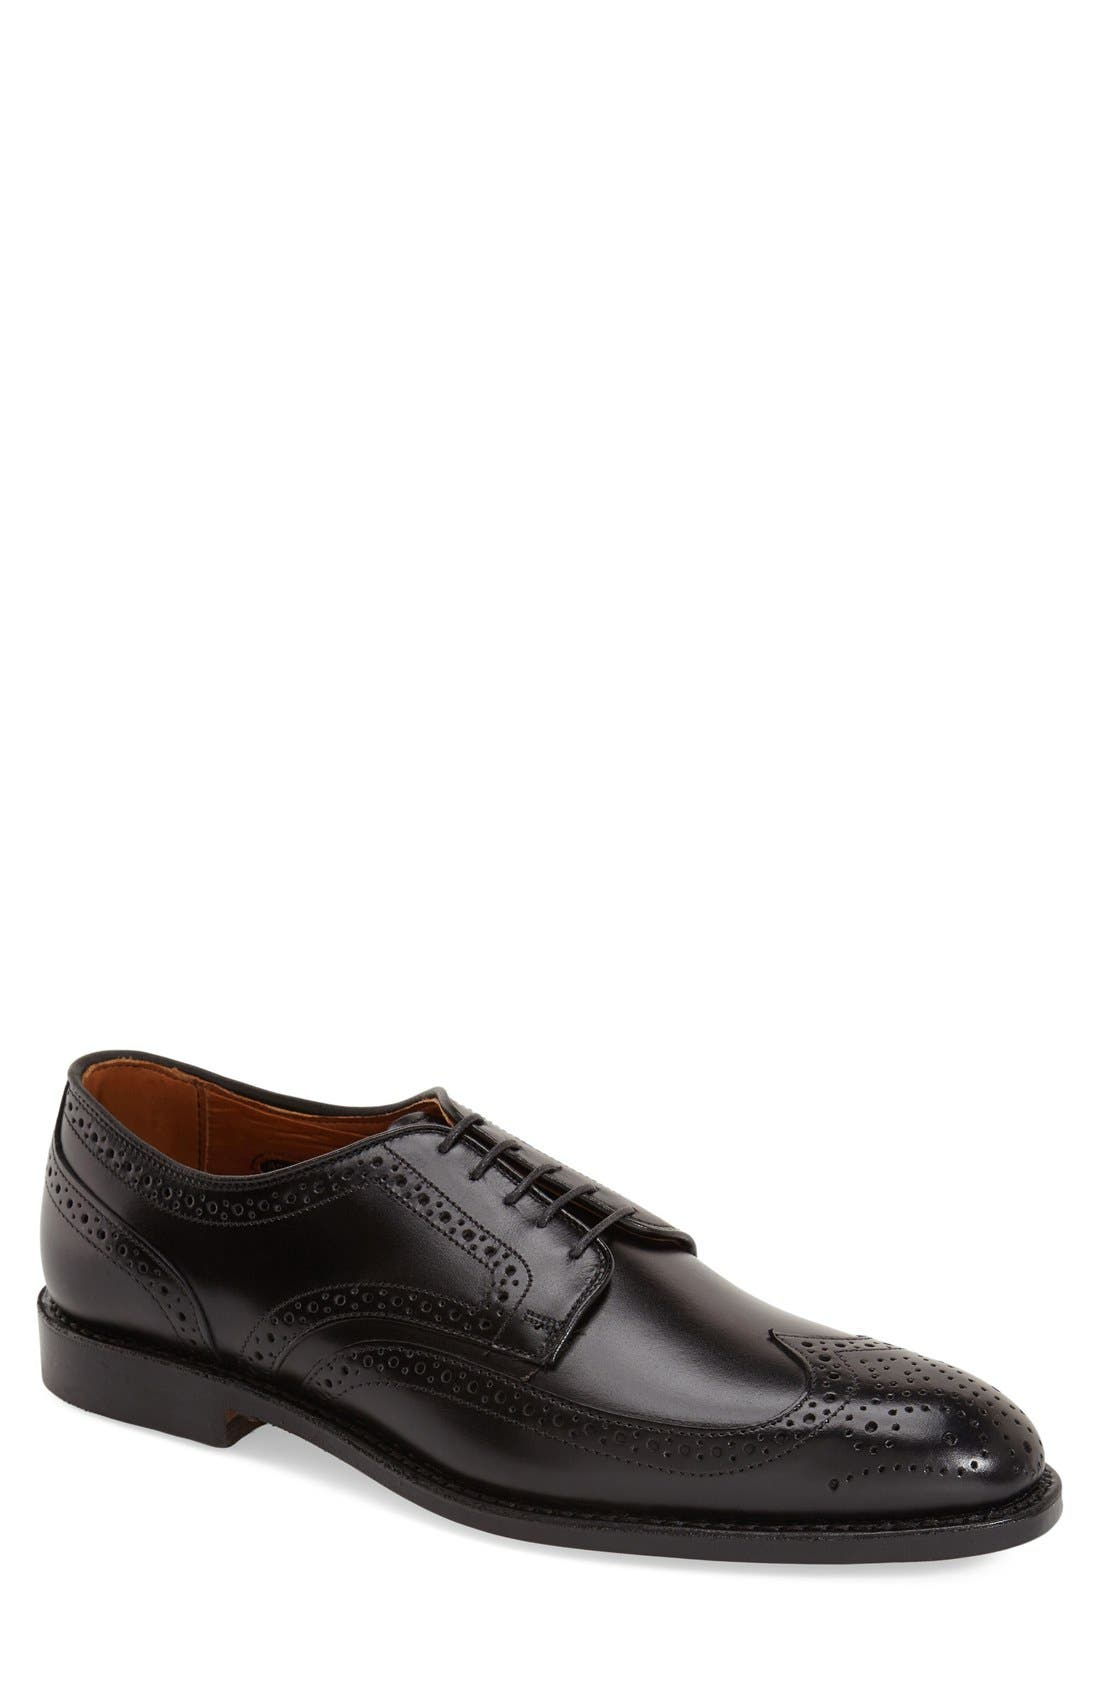 'Madison Park' Wingtip,                         Main,                         color, BLACK LEATHER